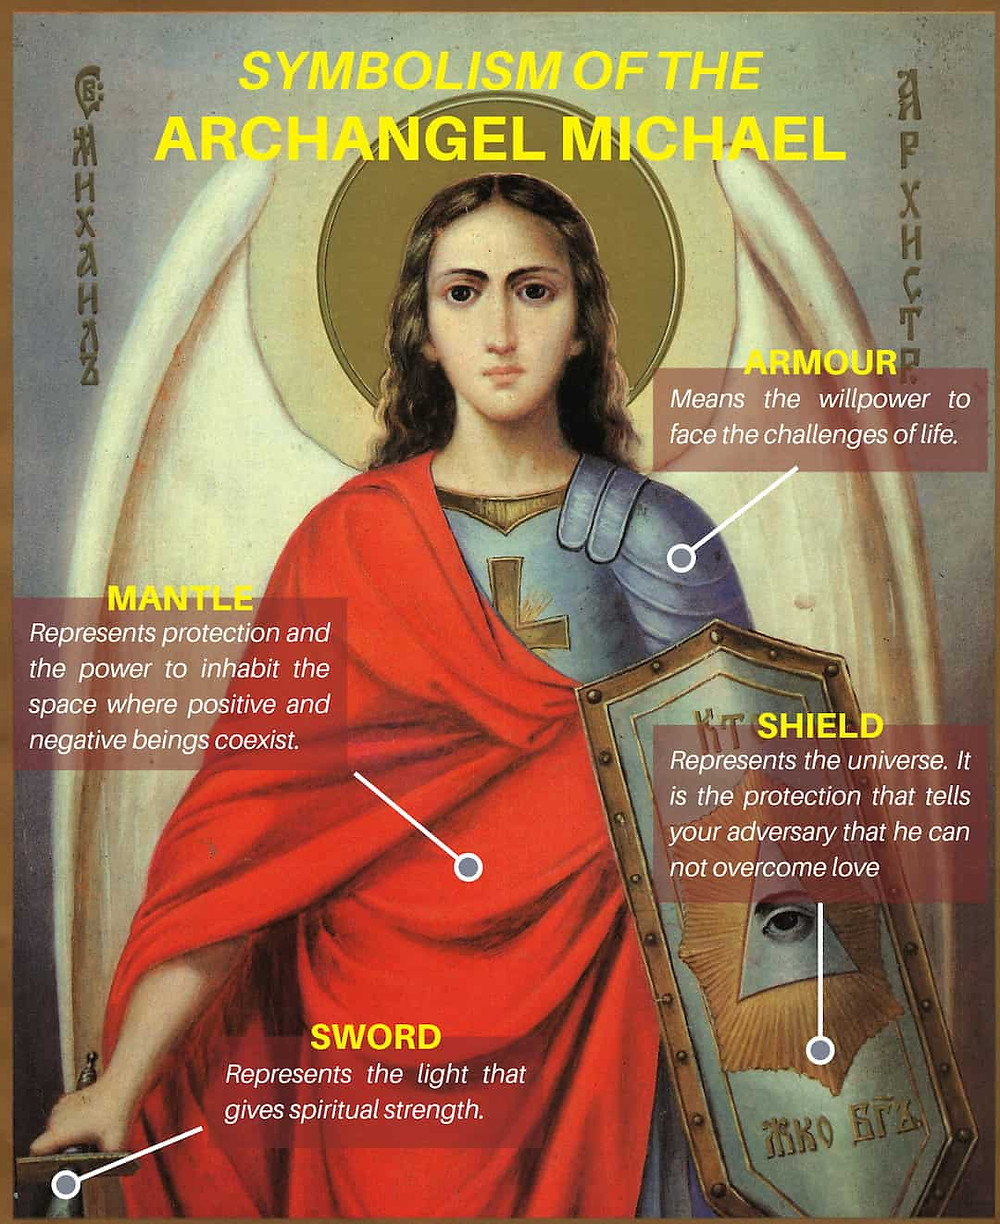 Archangel Michael symbolism explained